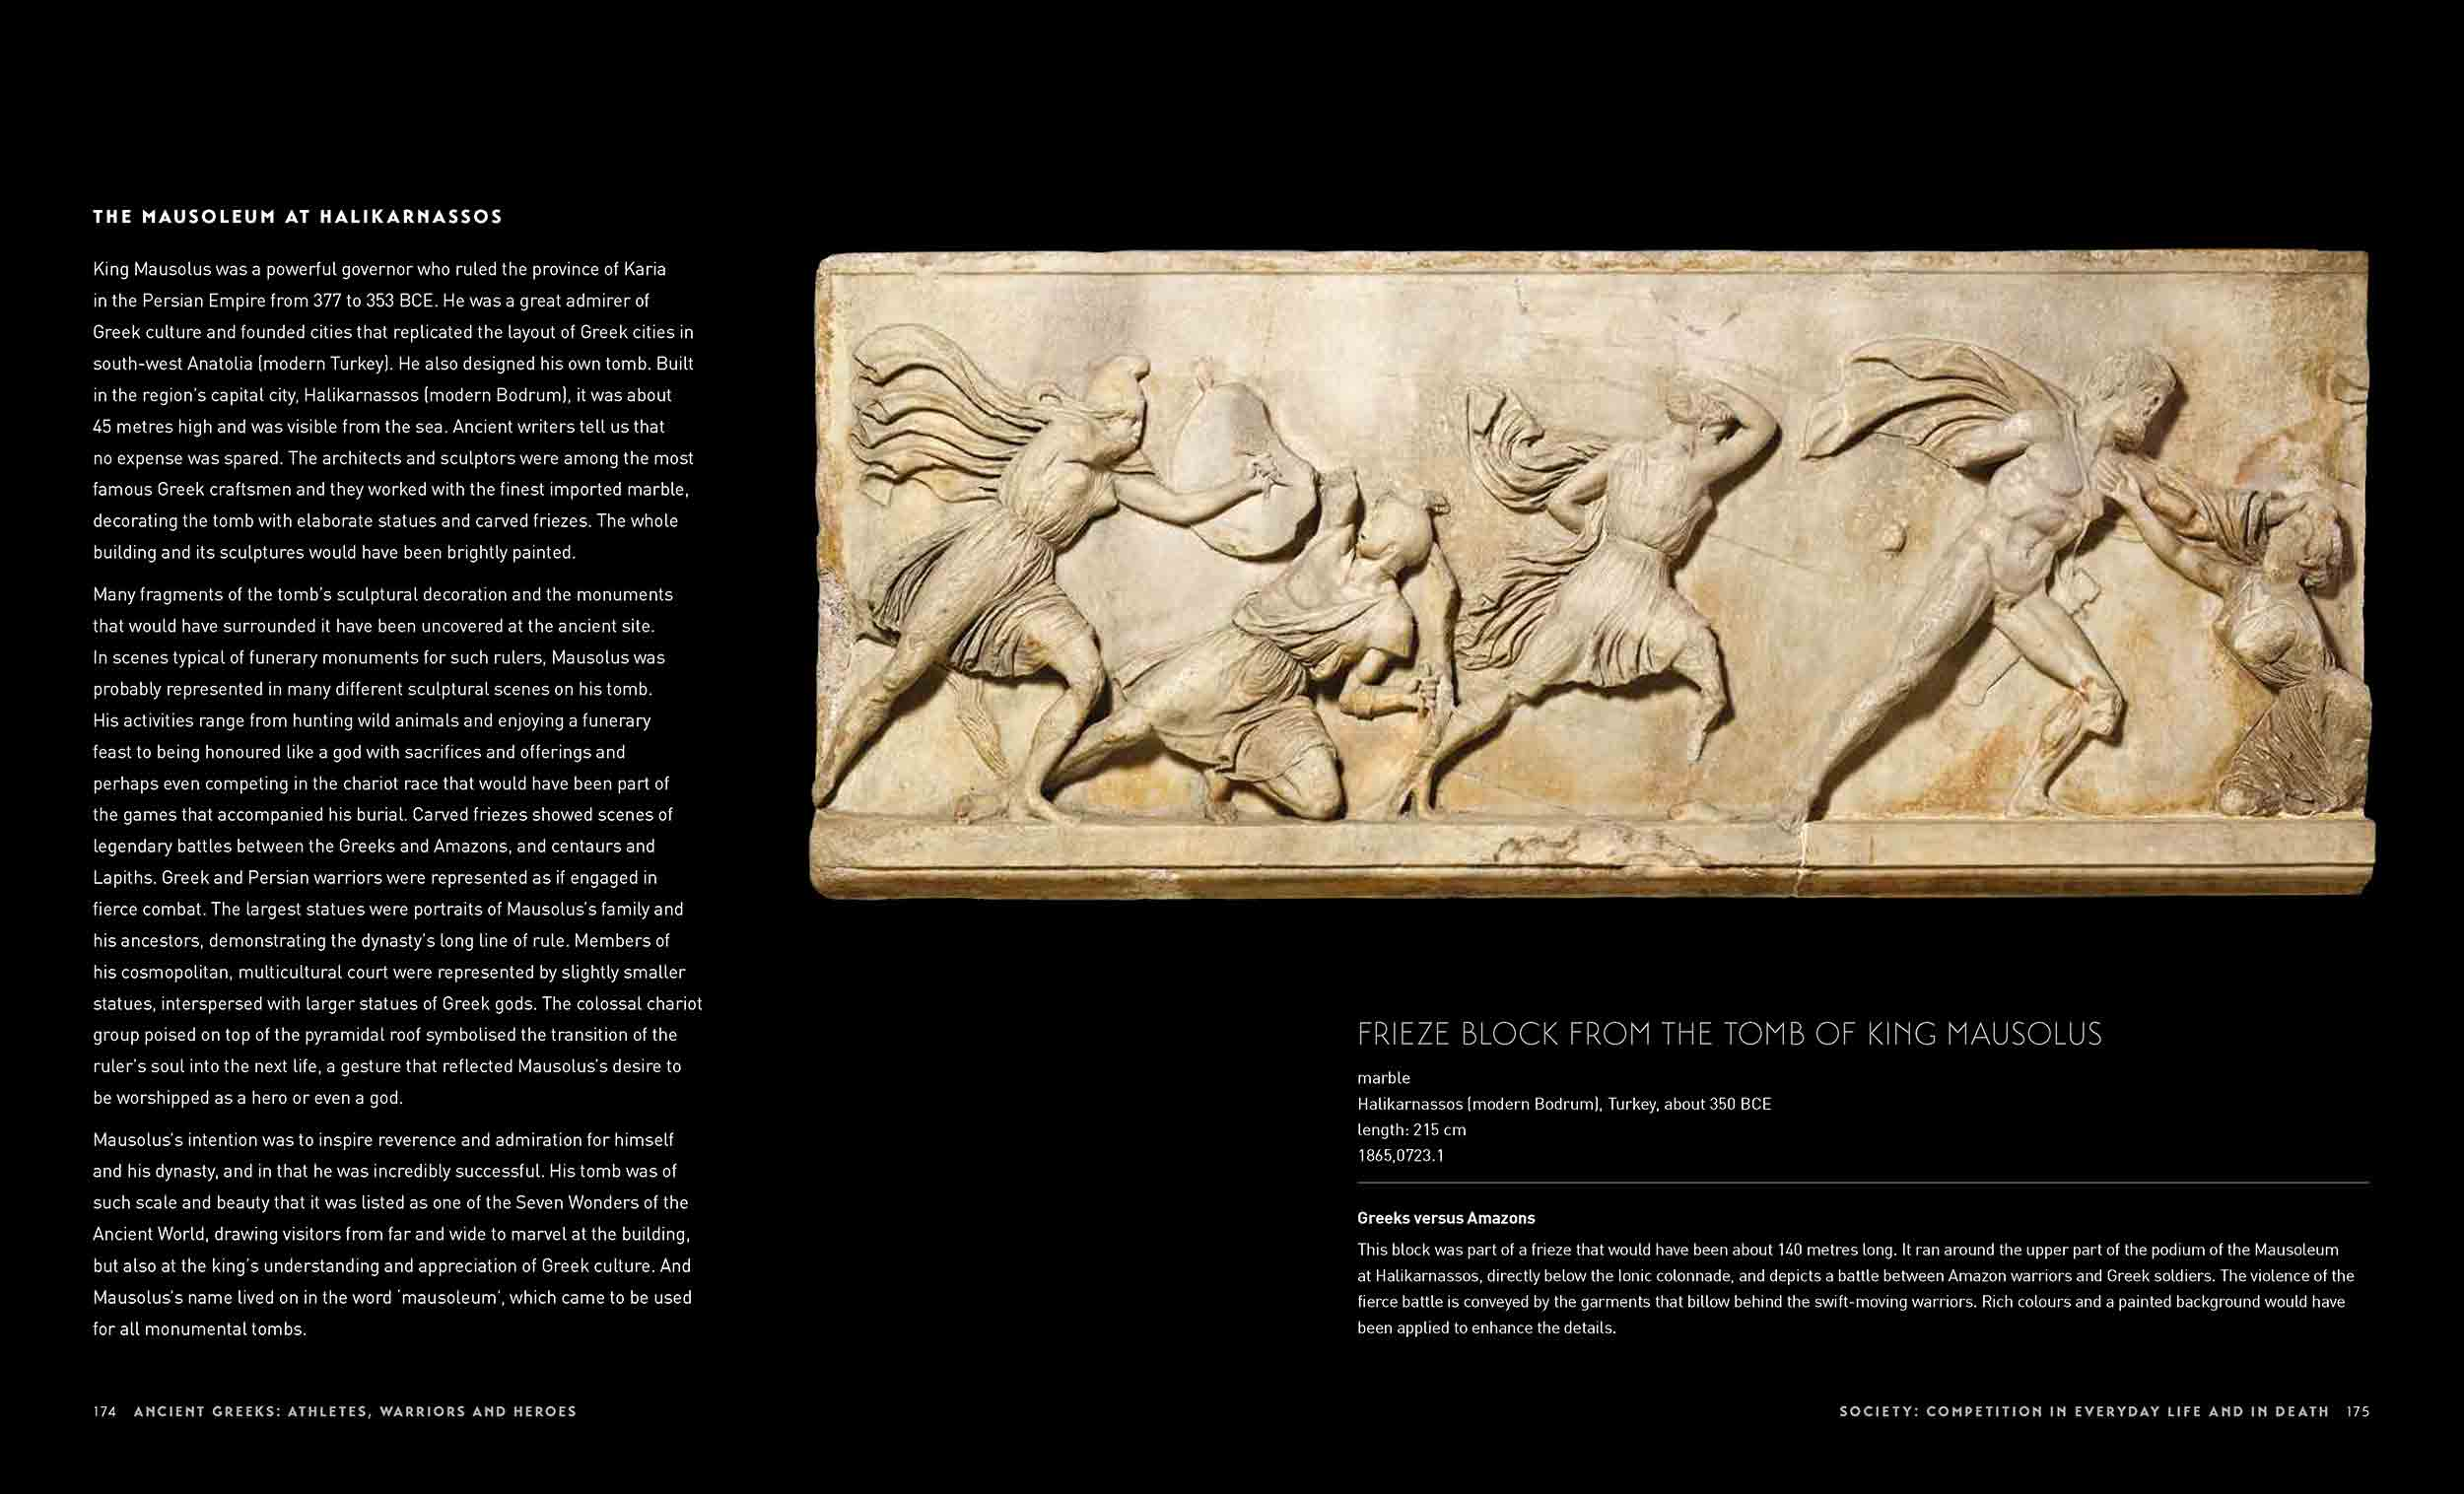 Sample page of a catalogue featuring text and a marble frieze with a relief design of a battle scene. - click to view larger image